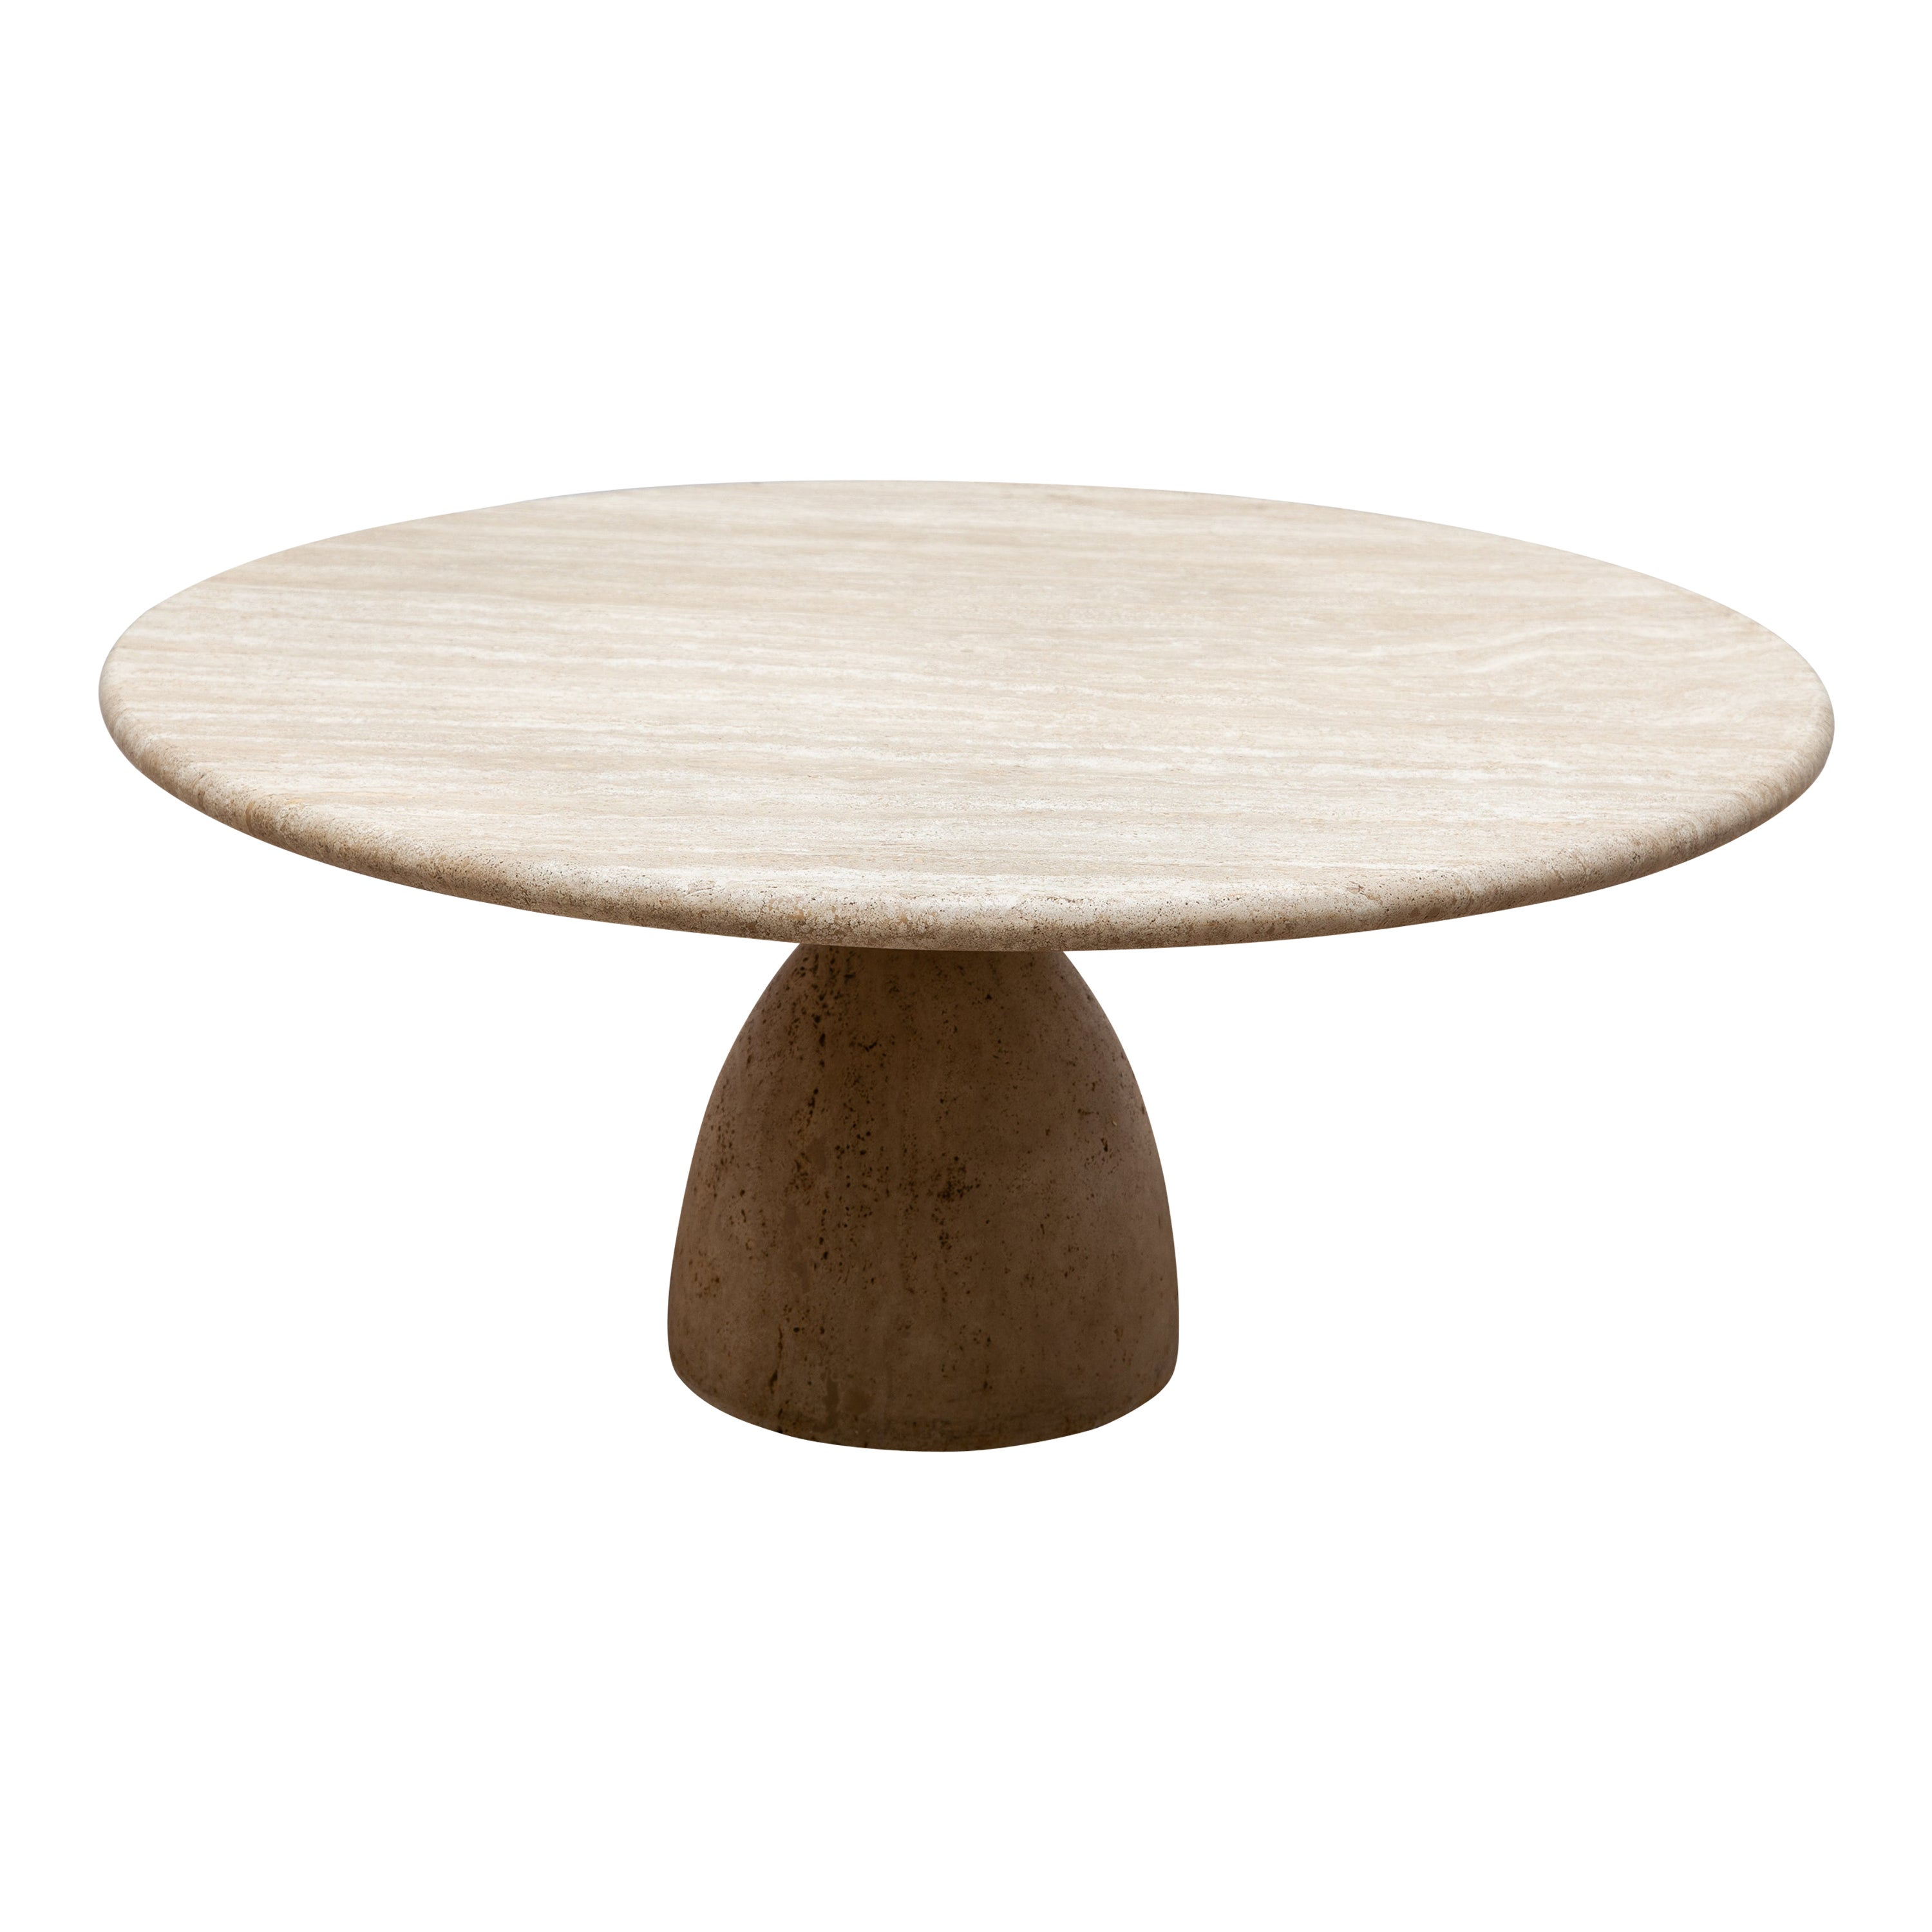 Round Solid Travertine Pedestal Coffee Table by Peter Draenert, 1970s